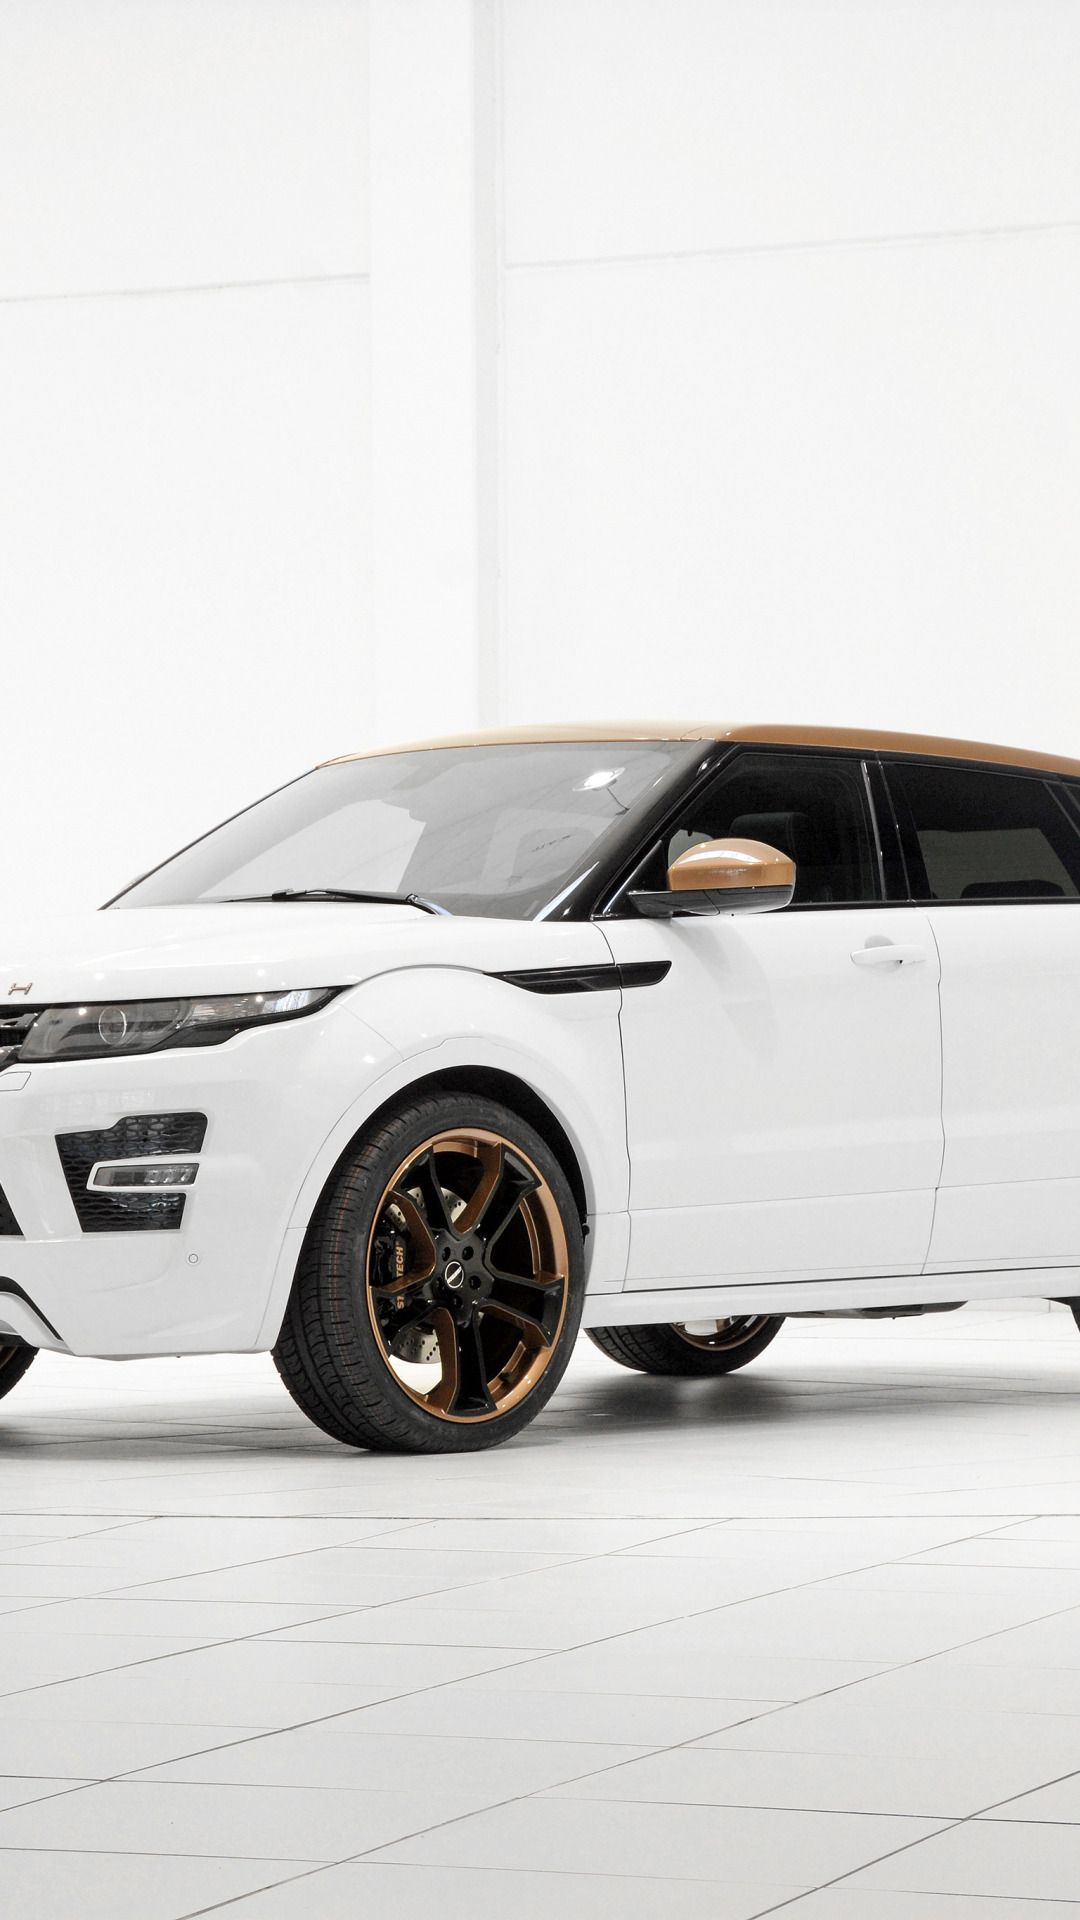 Range Rover iPhone xs wallpaper download